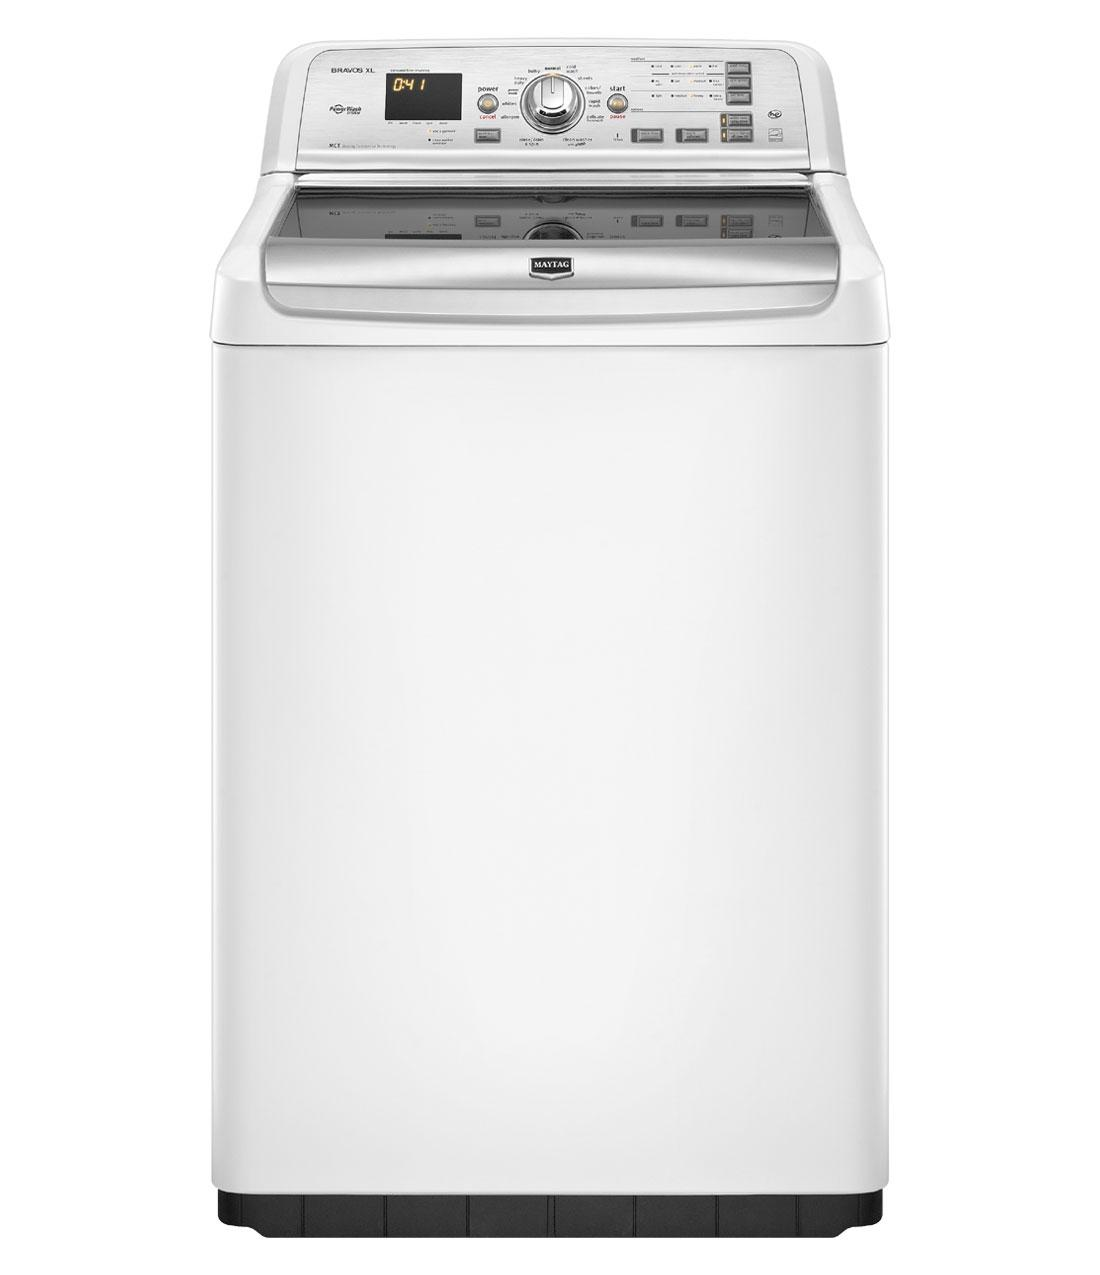 Maytag Mvwb850yg 28 Quot Top Load Washer With 4 6 Cu Ft